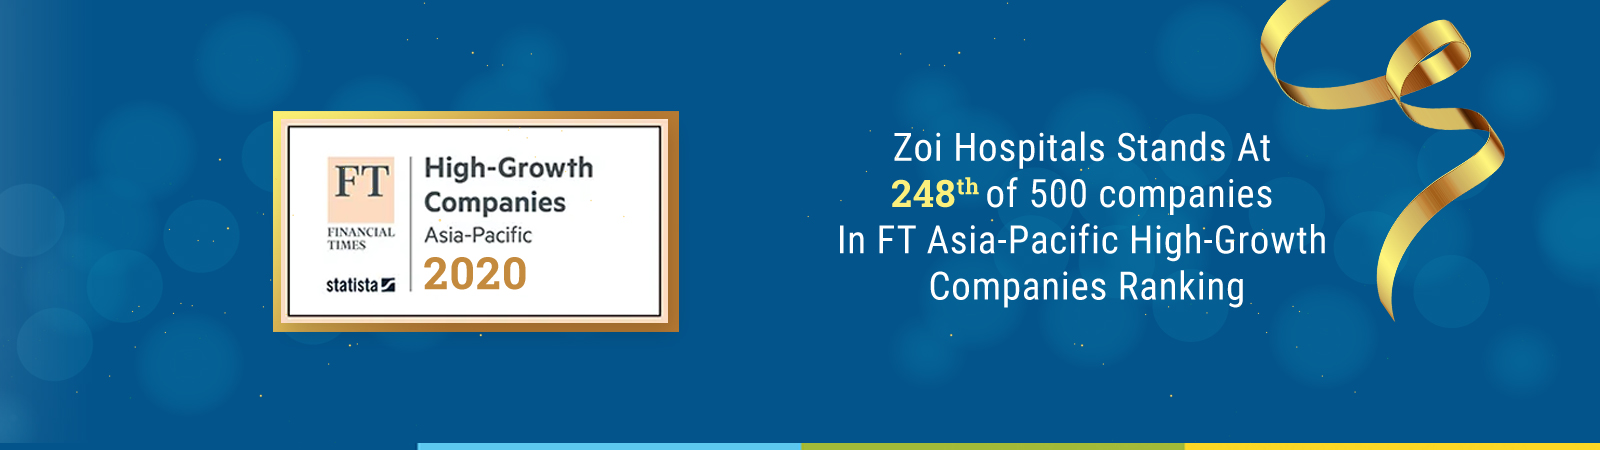 Zoi Hospitals Stands At 248 In FT Asia-Pacific High-Growth Companies Ranking